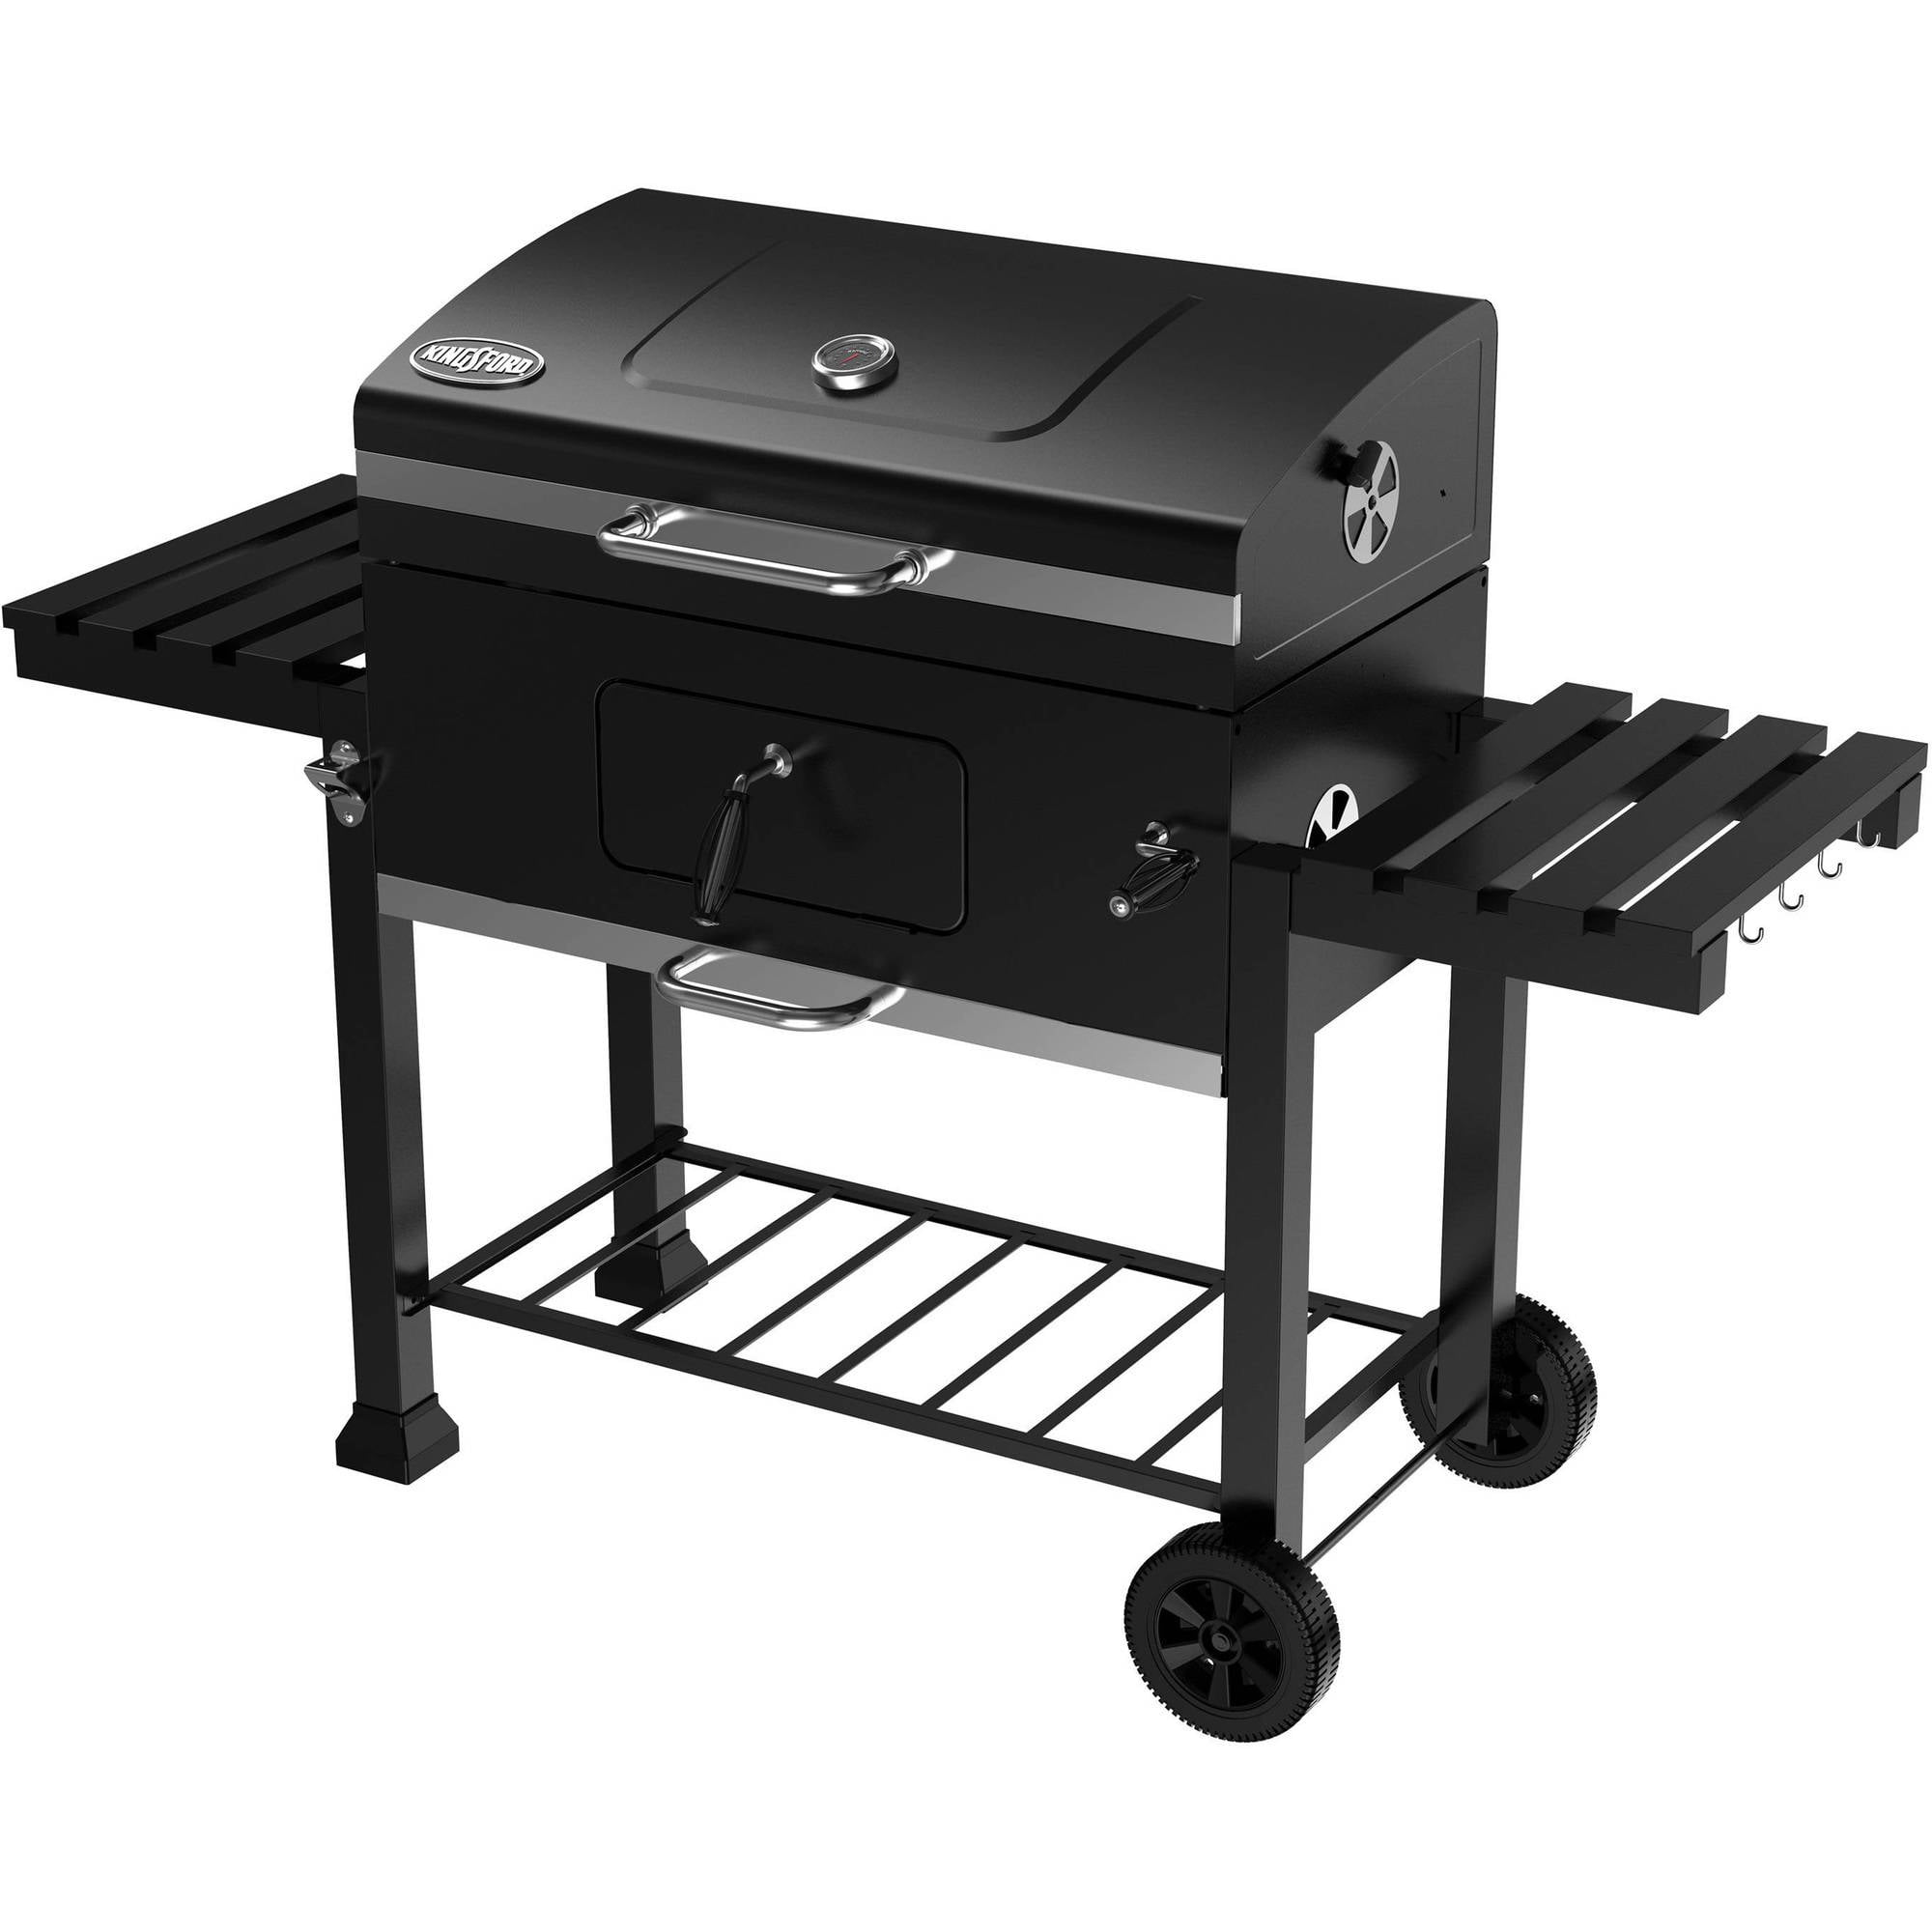 walmart 5 burner gas grill stainless steel black walmart com